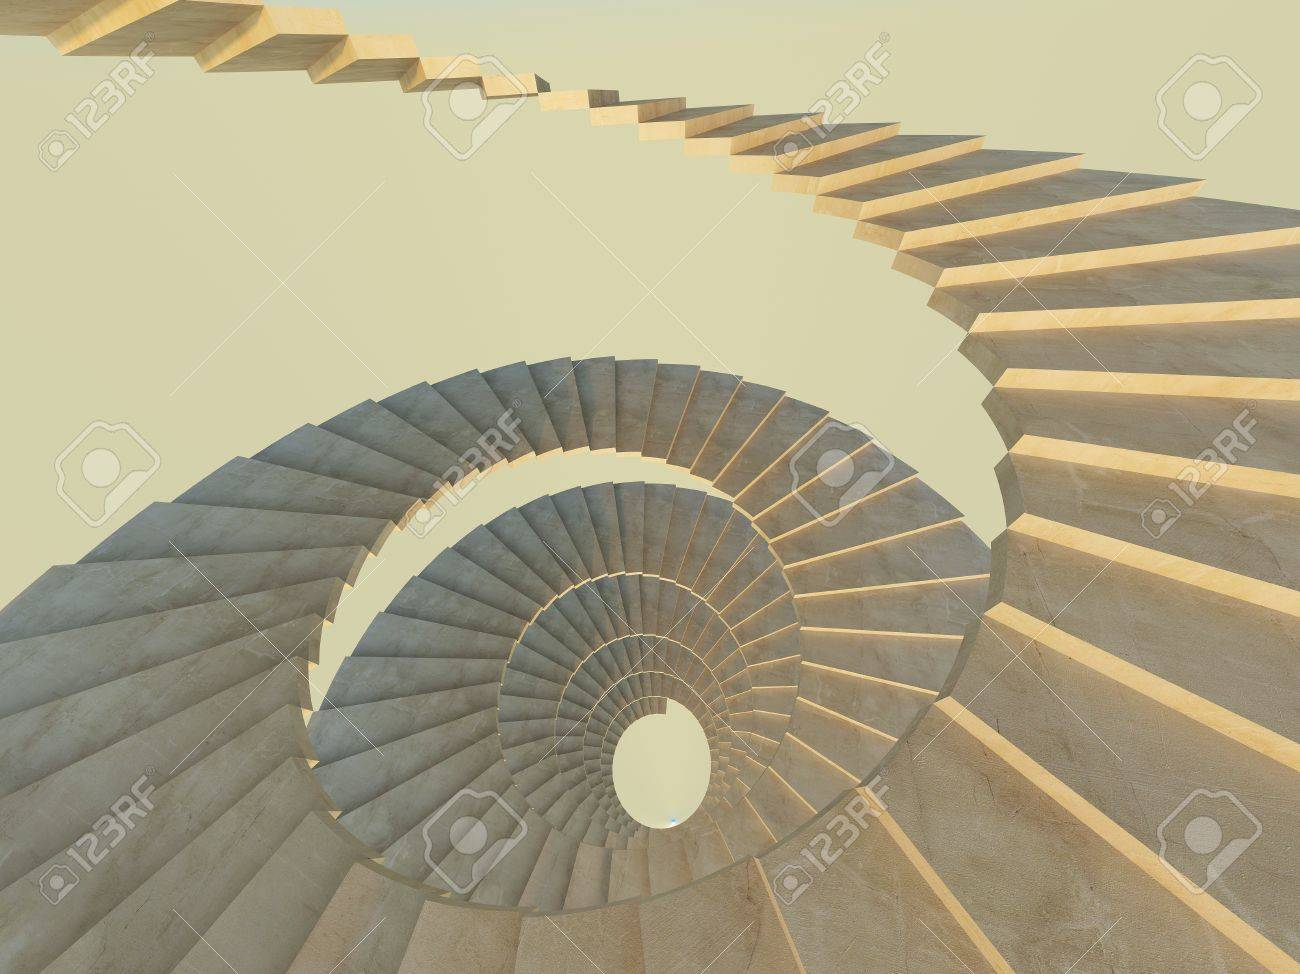 Concrete Endlecc Spiral Staircase View From Above Stock Photo